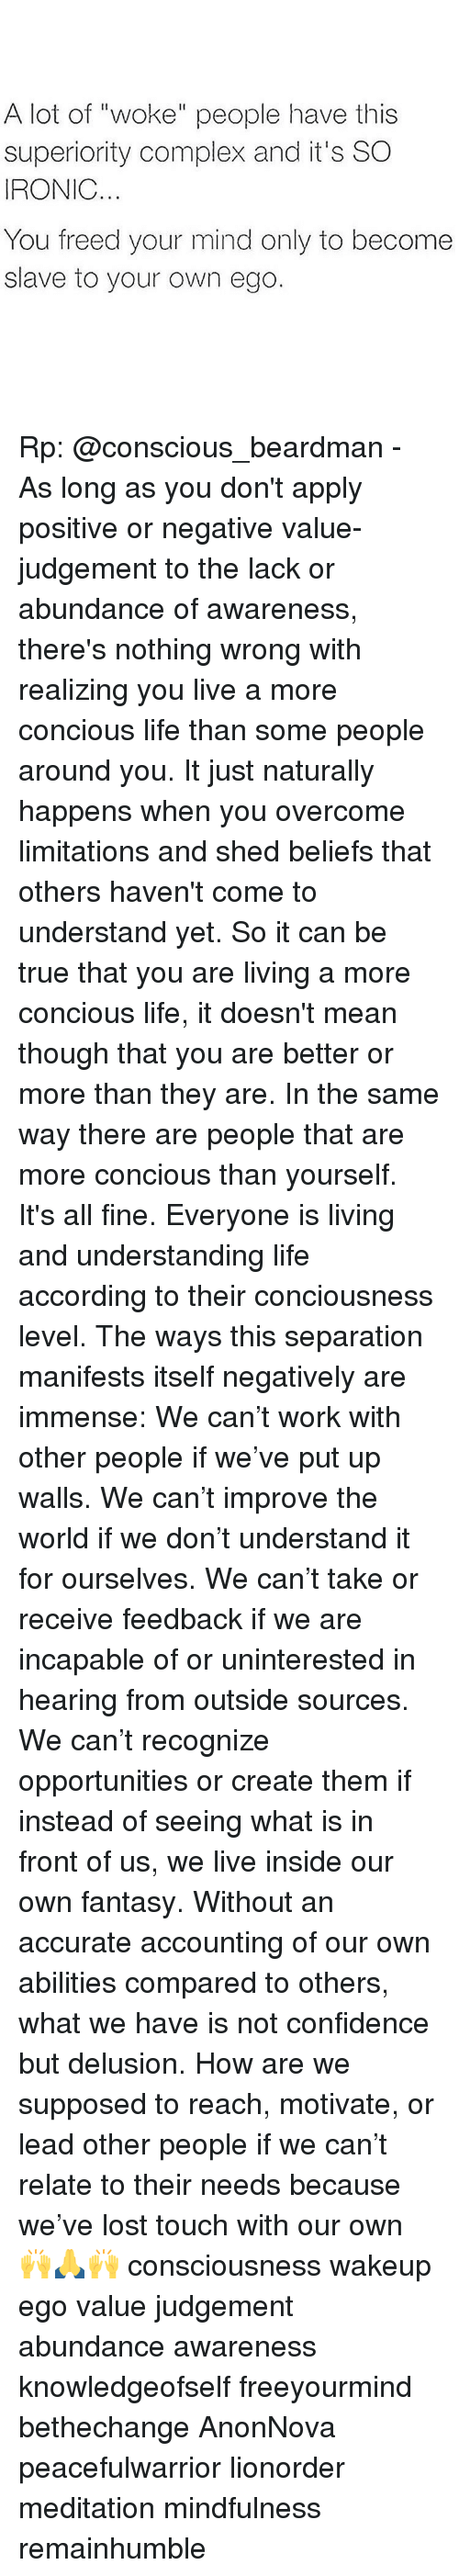 people are complex and cannot be